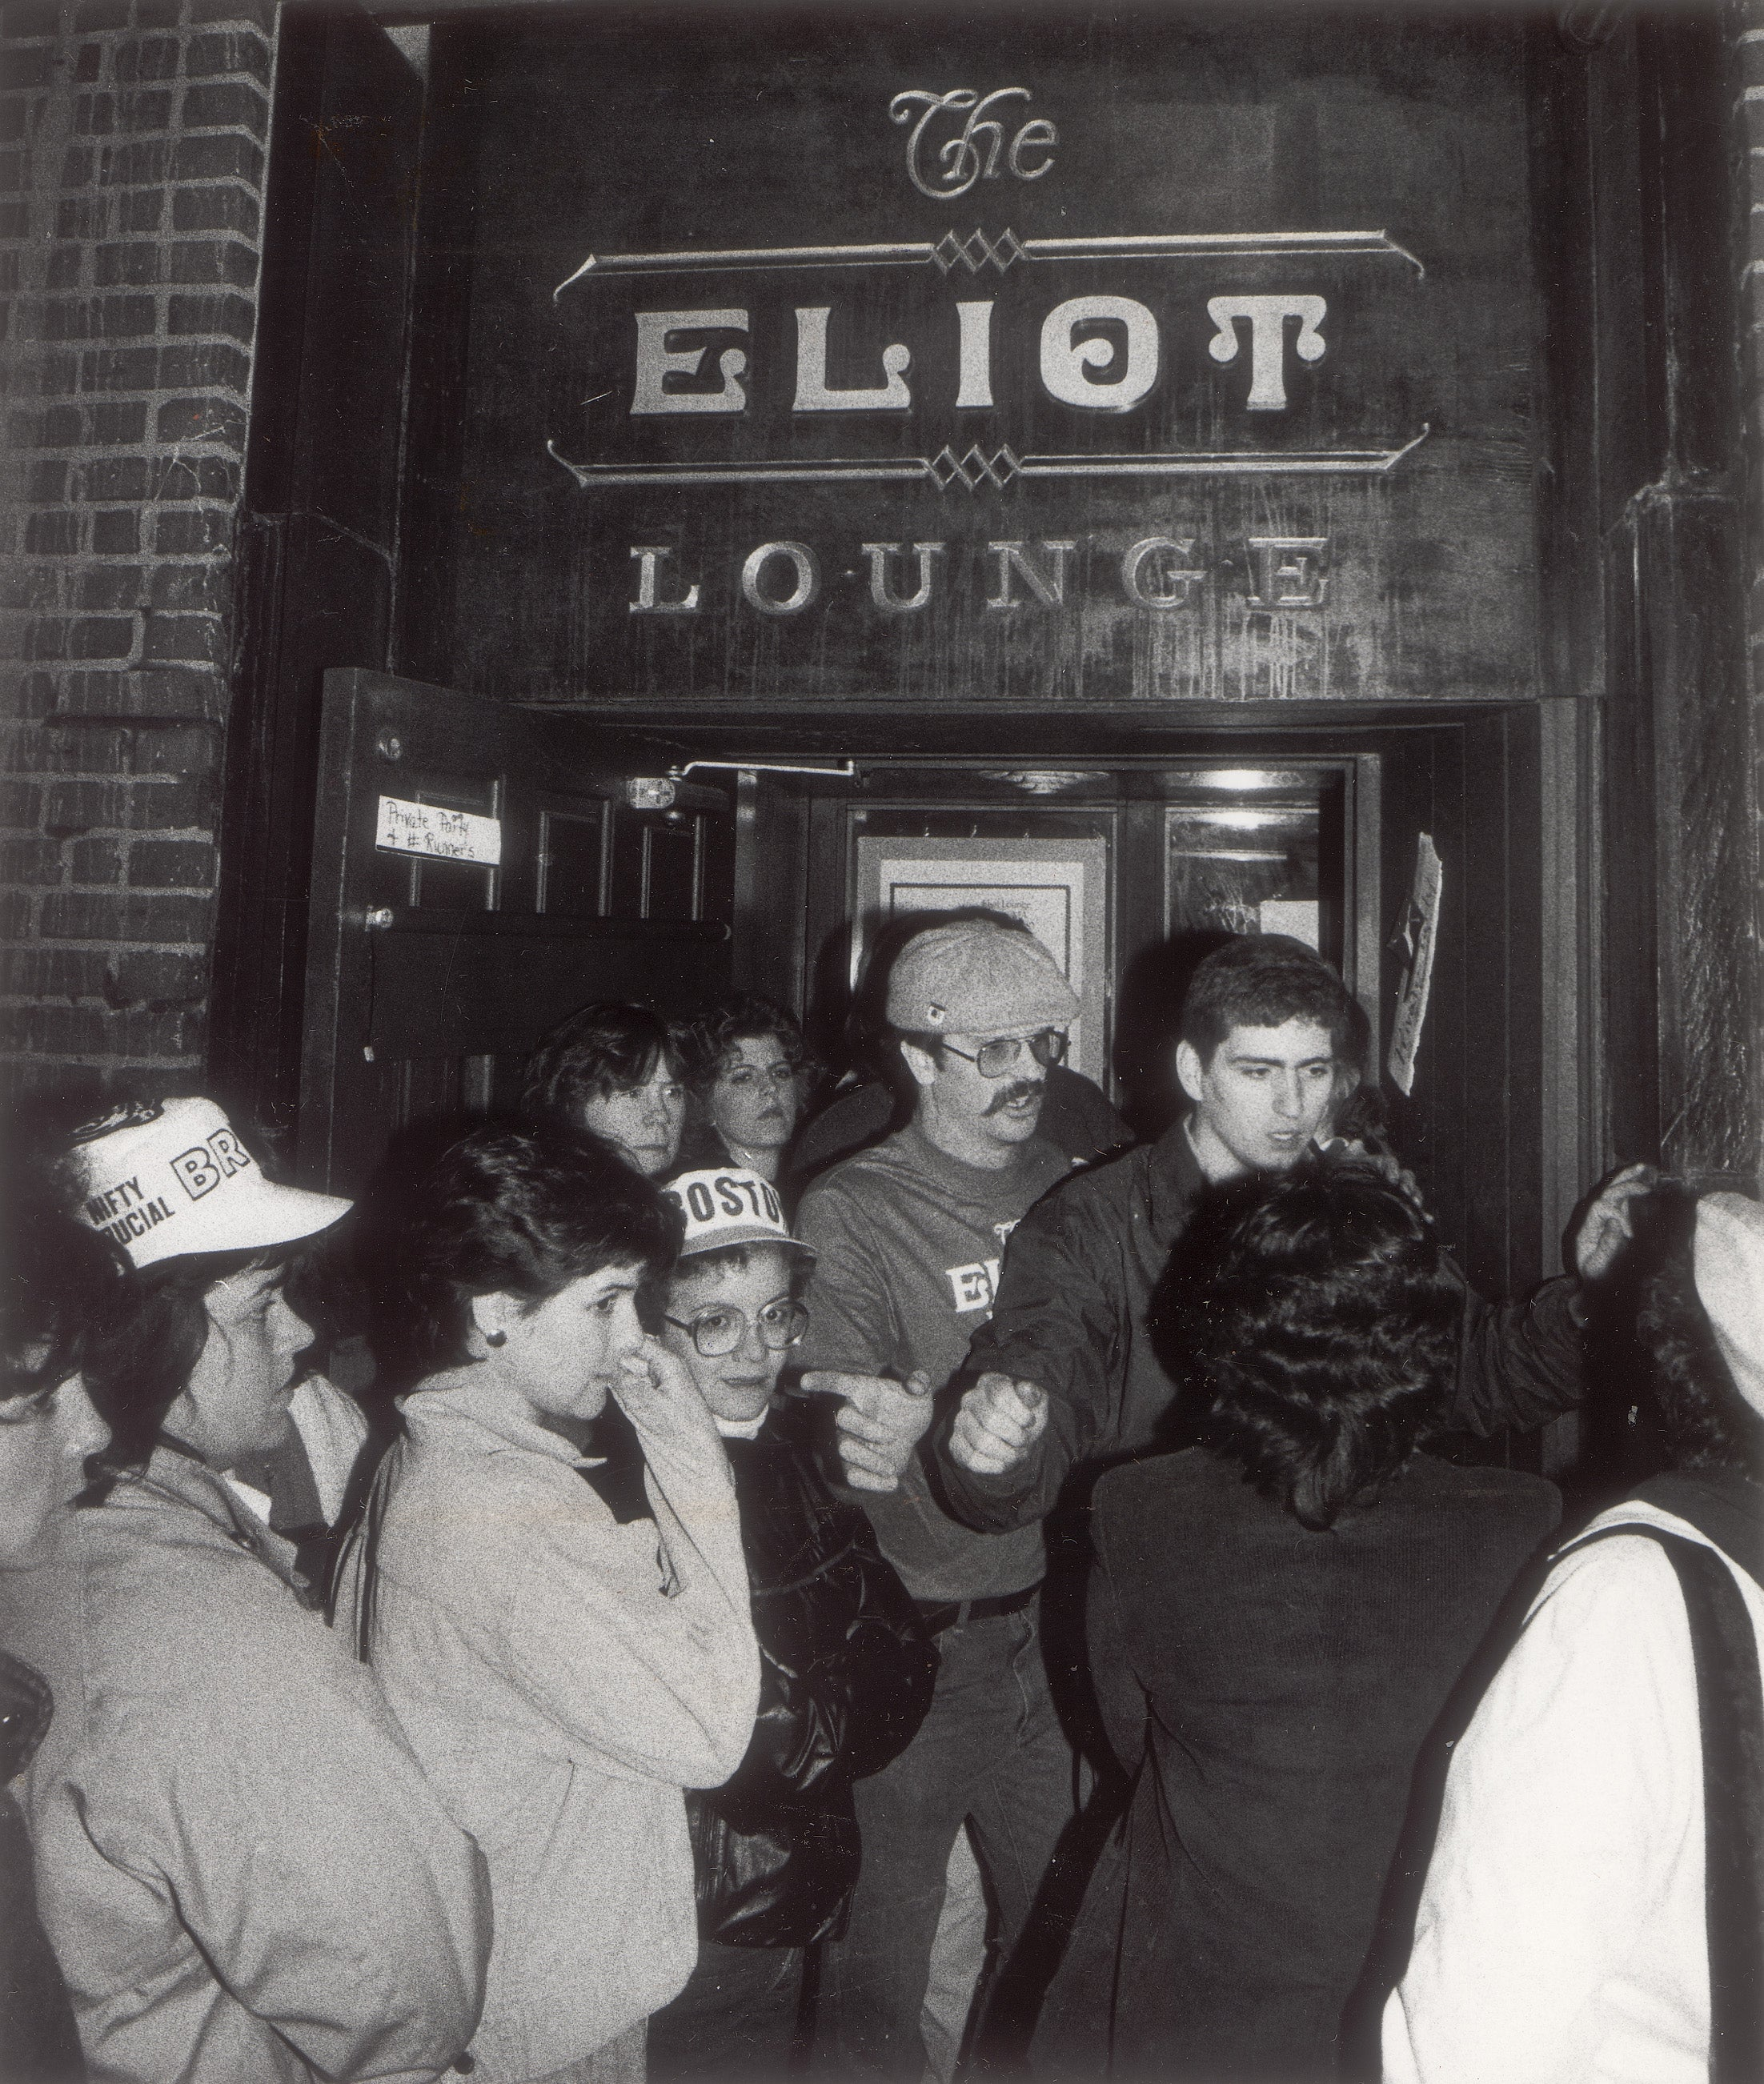 Outside of the Eliot in 1983.